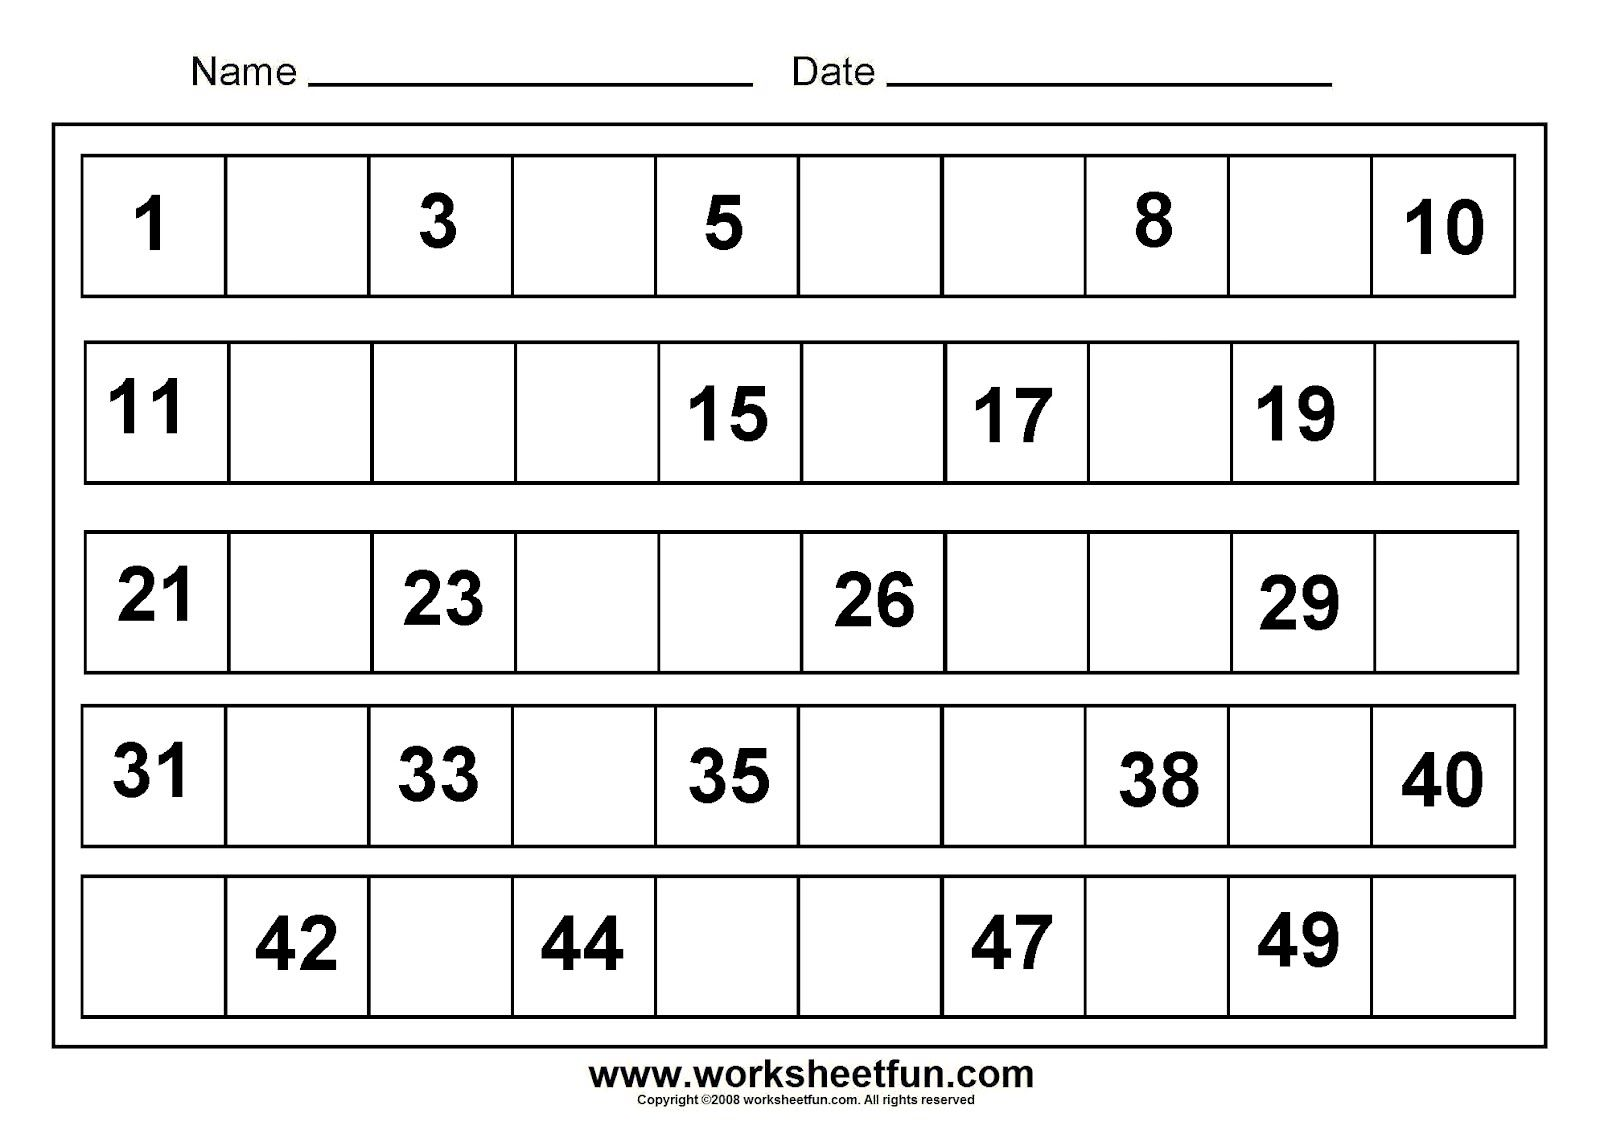 Printables Math Worksheets For Kinder 1000 images about math on pinterest worksheets for kindergarten and printable worksheets